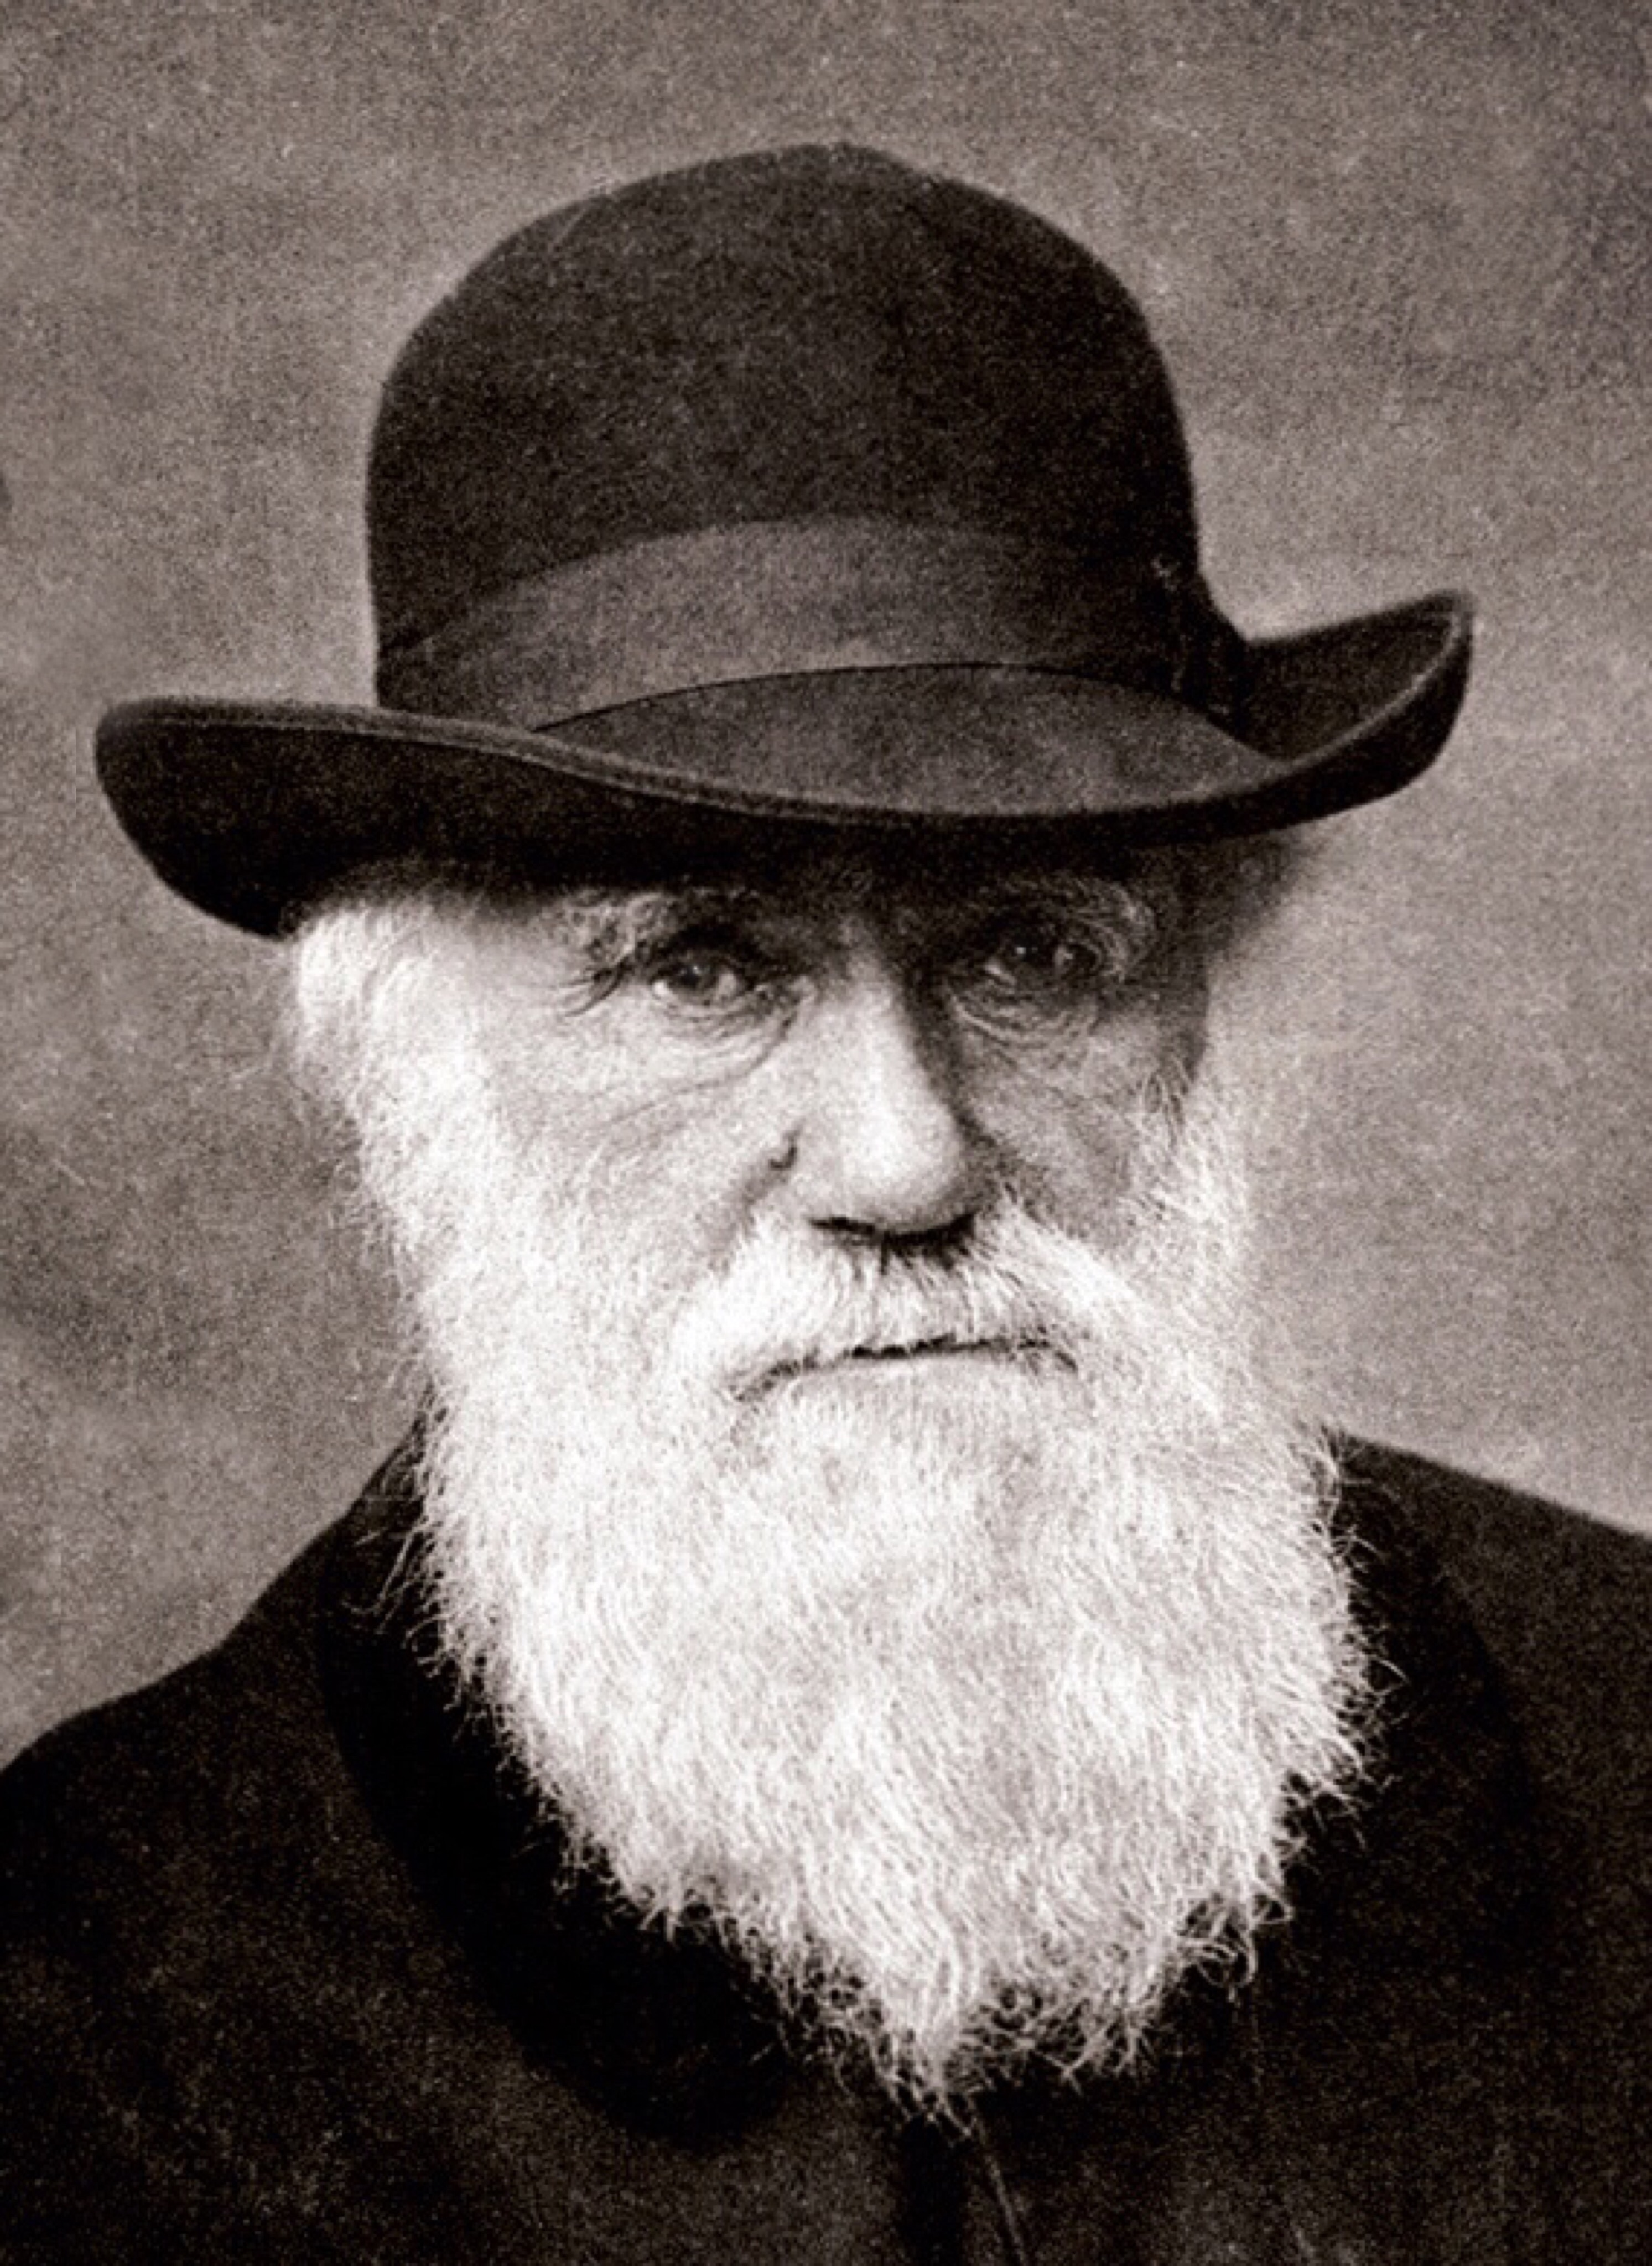 A classic image of Darwin in 1880, still researching and producing numerous books.